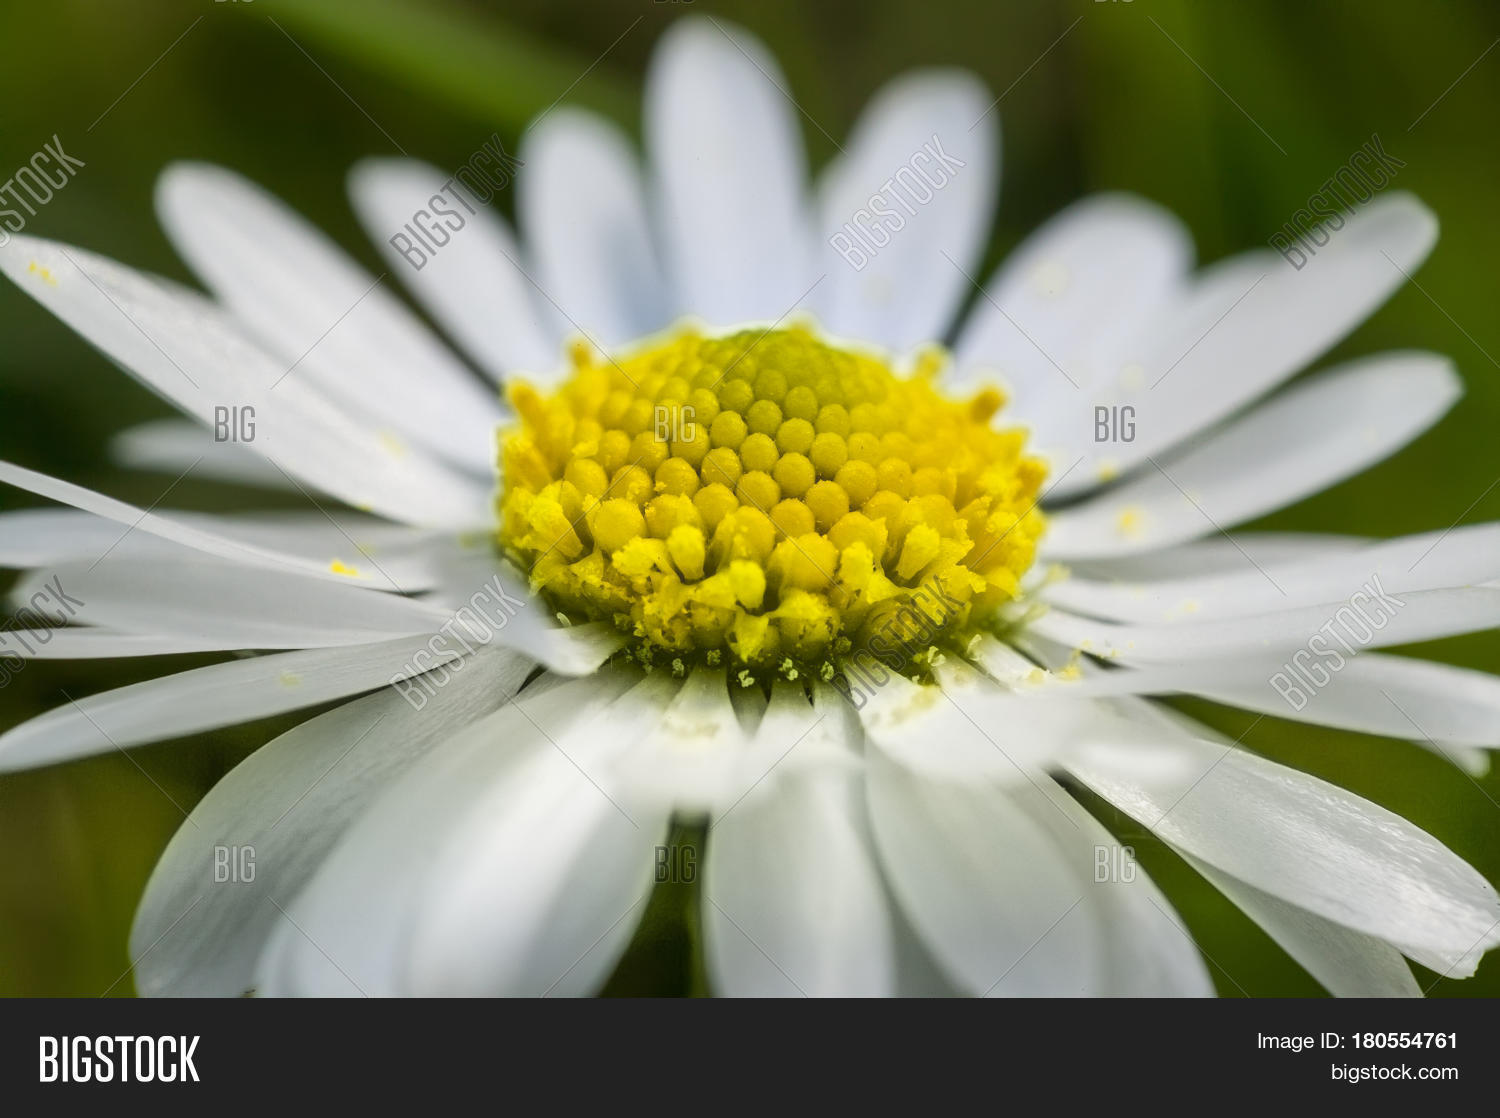 Enlarged section daisy flower image photo bigstock enlarged section of the daisy flower an explosion of color and details of a common izmirmasajfo Gallery